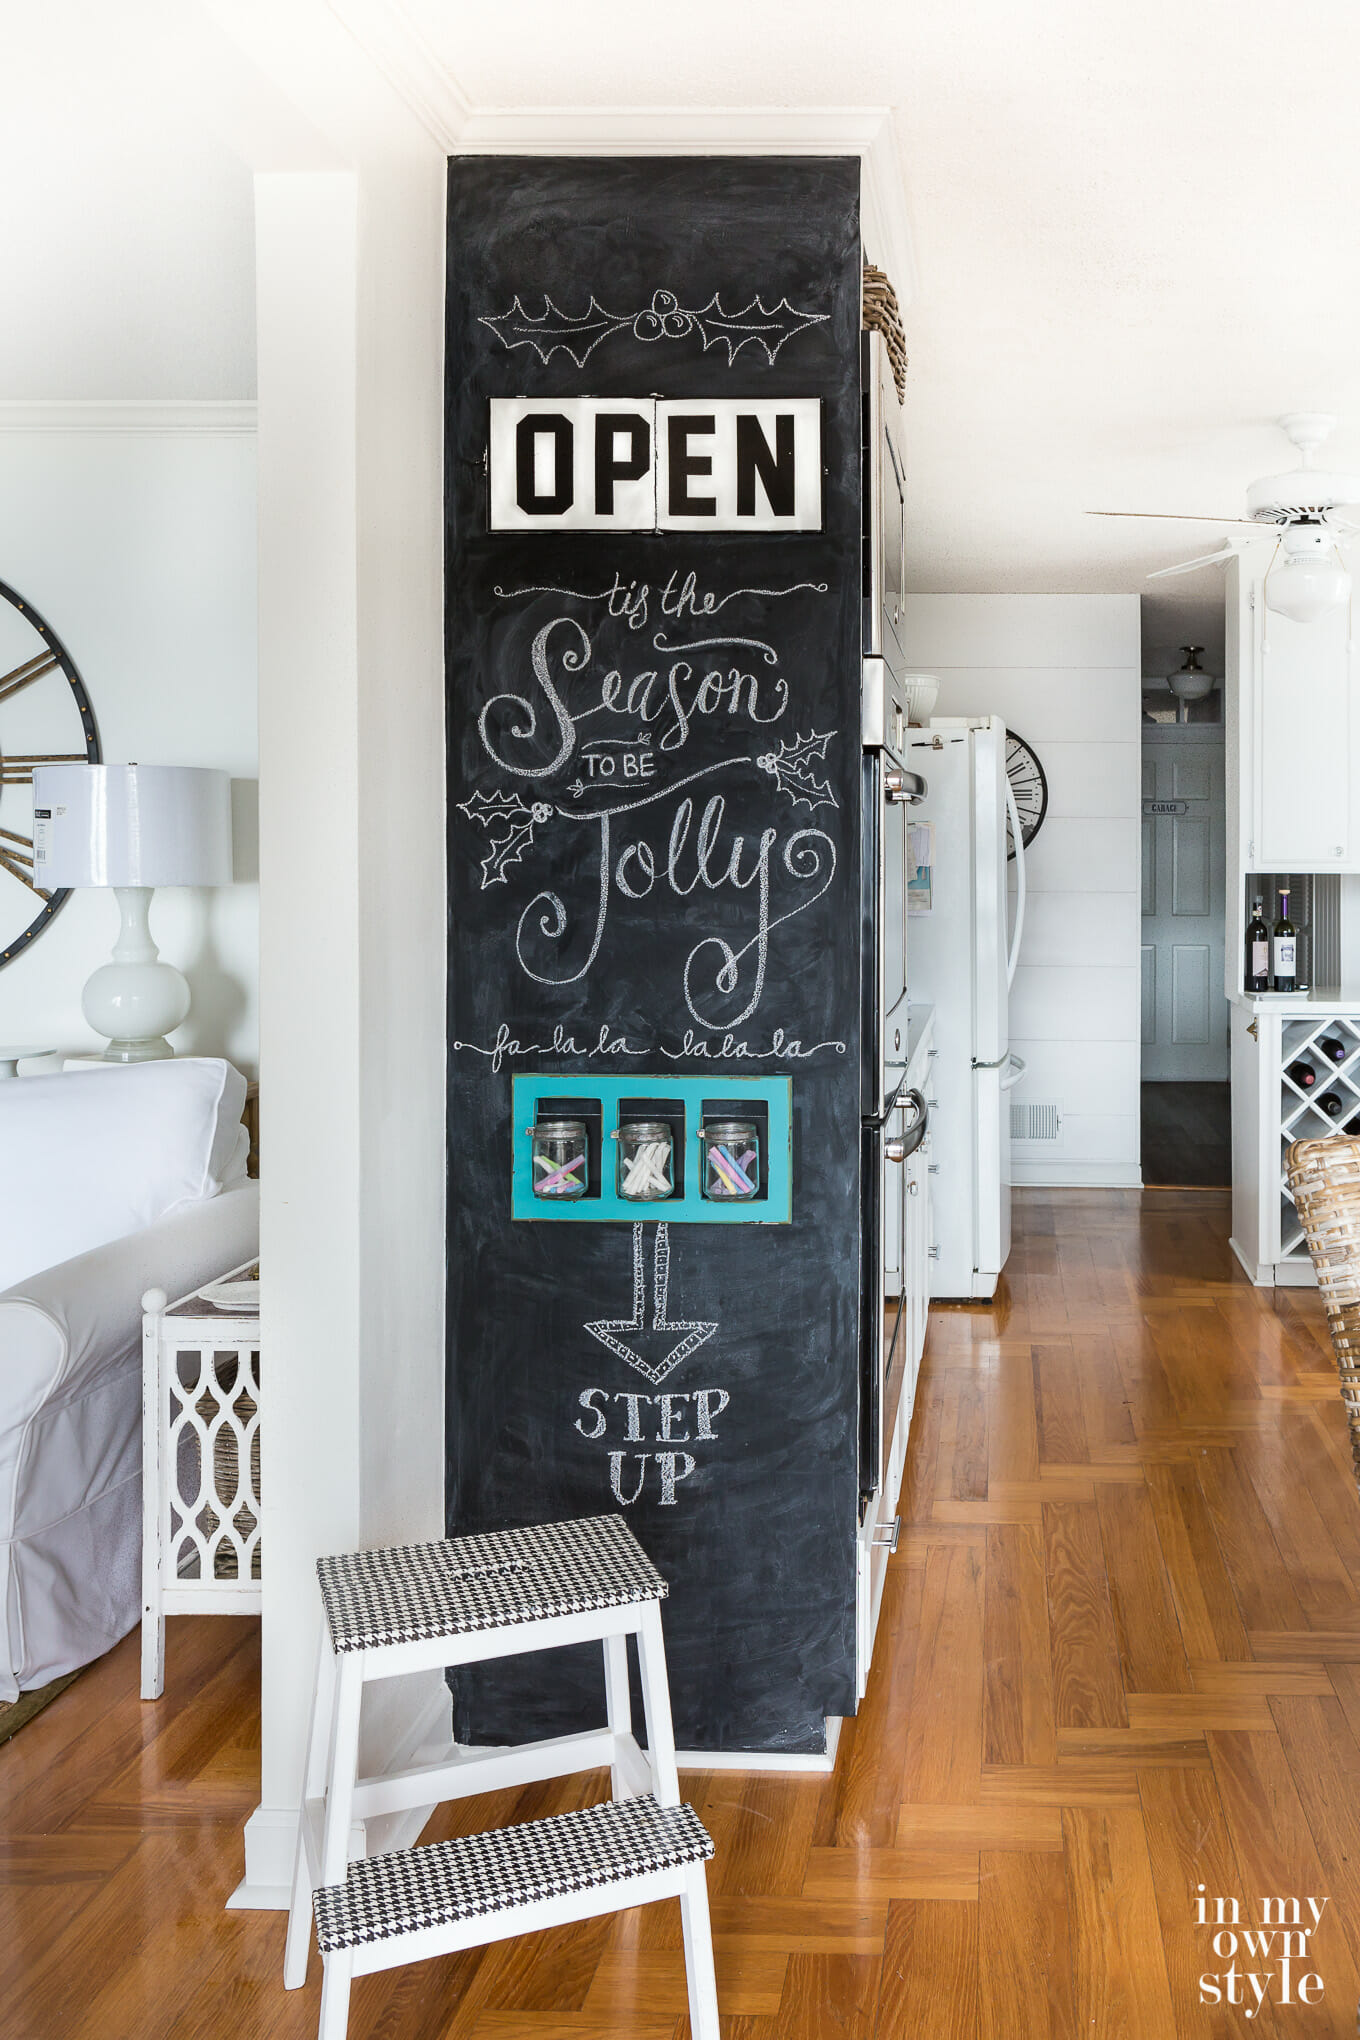 How-to-create-a-floor-to-ceiling-chalkboard-on-a-wall-0375-1